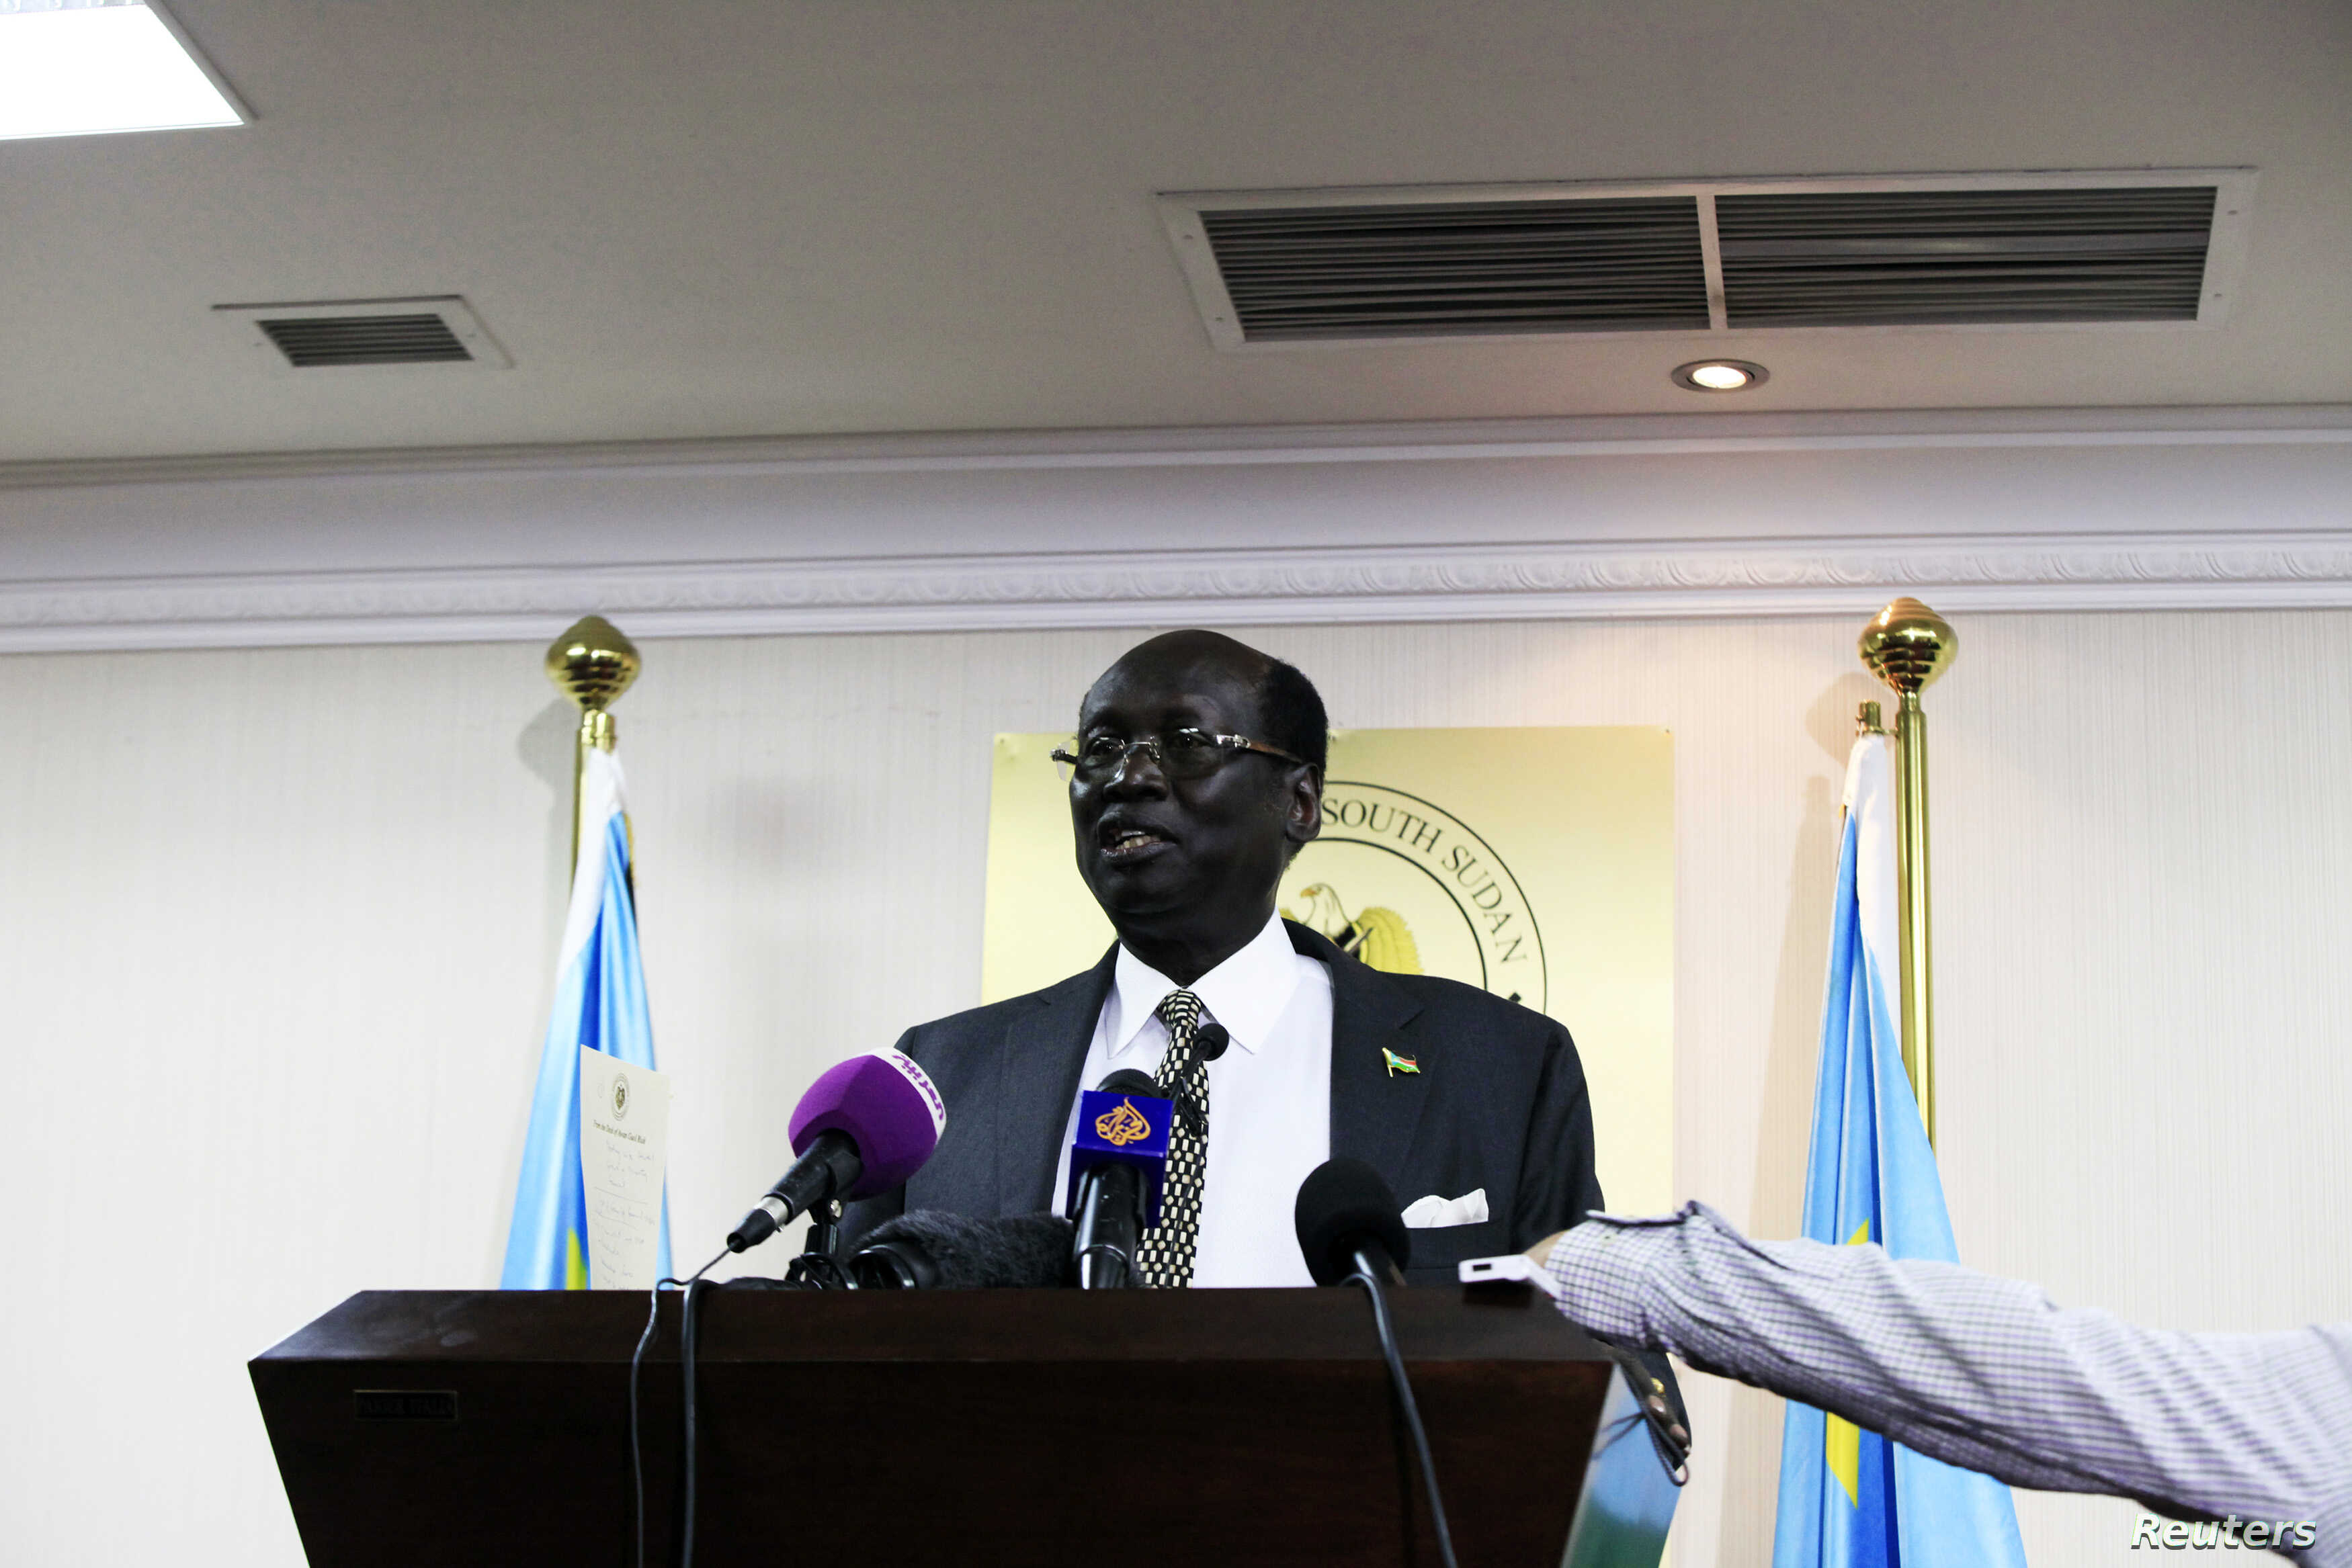 South Sudan Foreign Minister Barnaba Marial Benjamin, seen here on Aug. 12, 2014, in Juba, says the status of foreign workers will be discussed further at a later date.